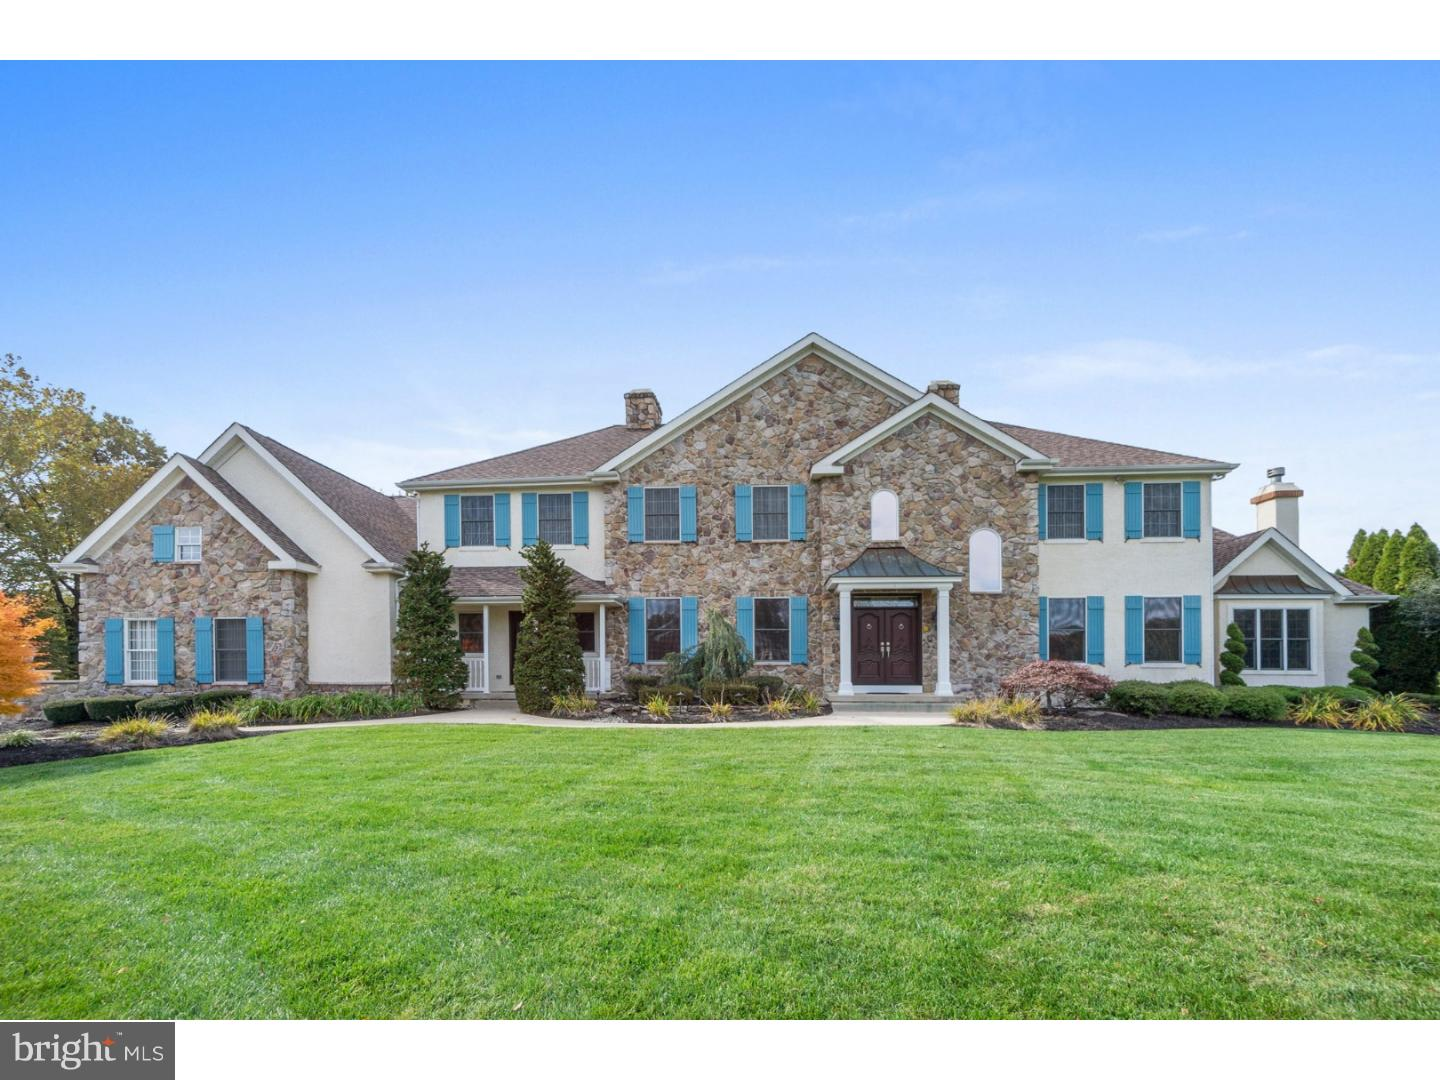 535 SHADOWBROOK TRAIL, MULLICA HILL, NJ 08062